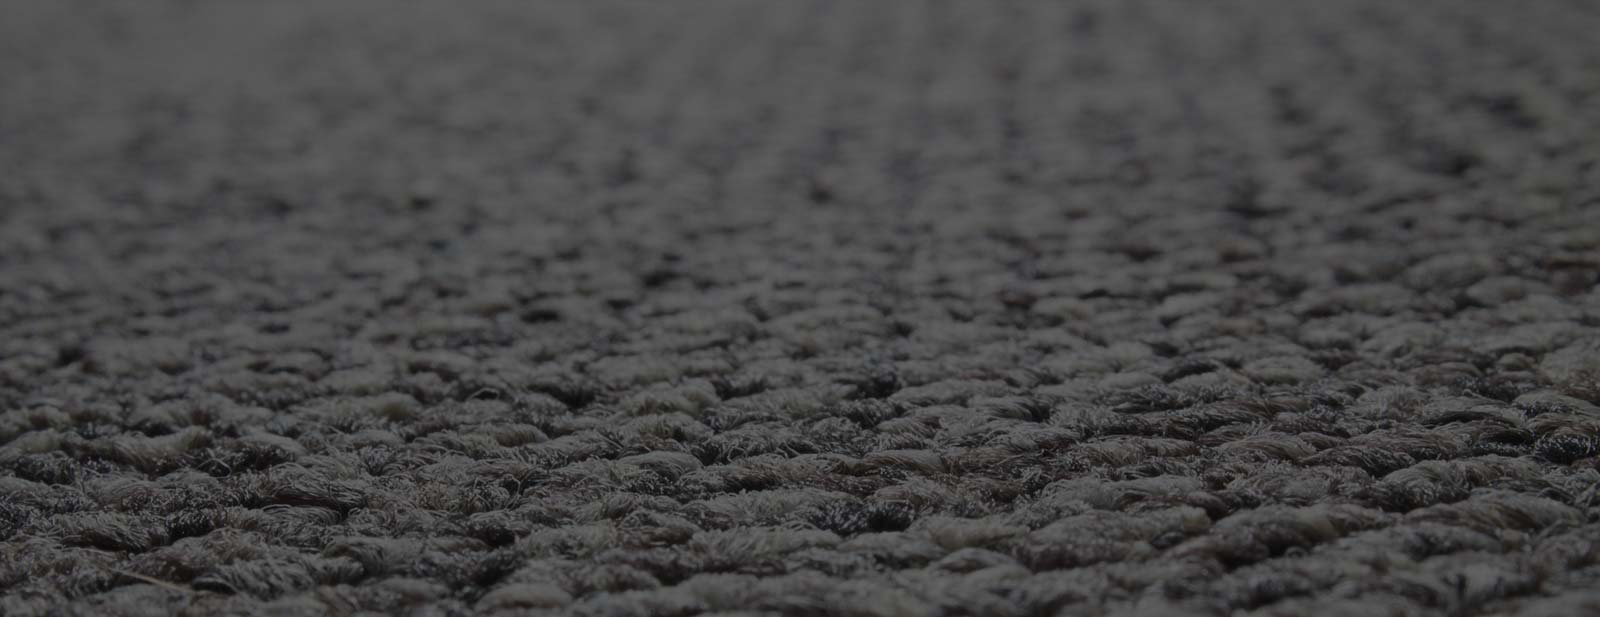 close-up of carpet pile